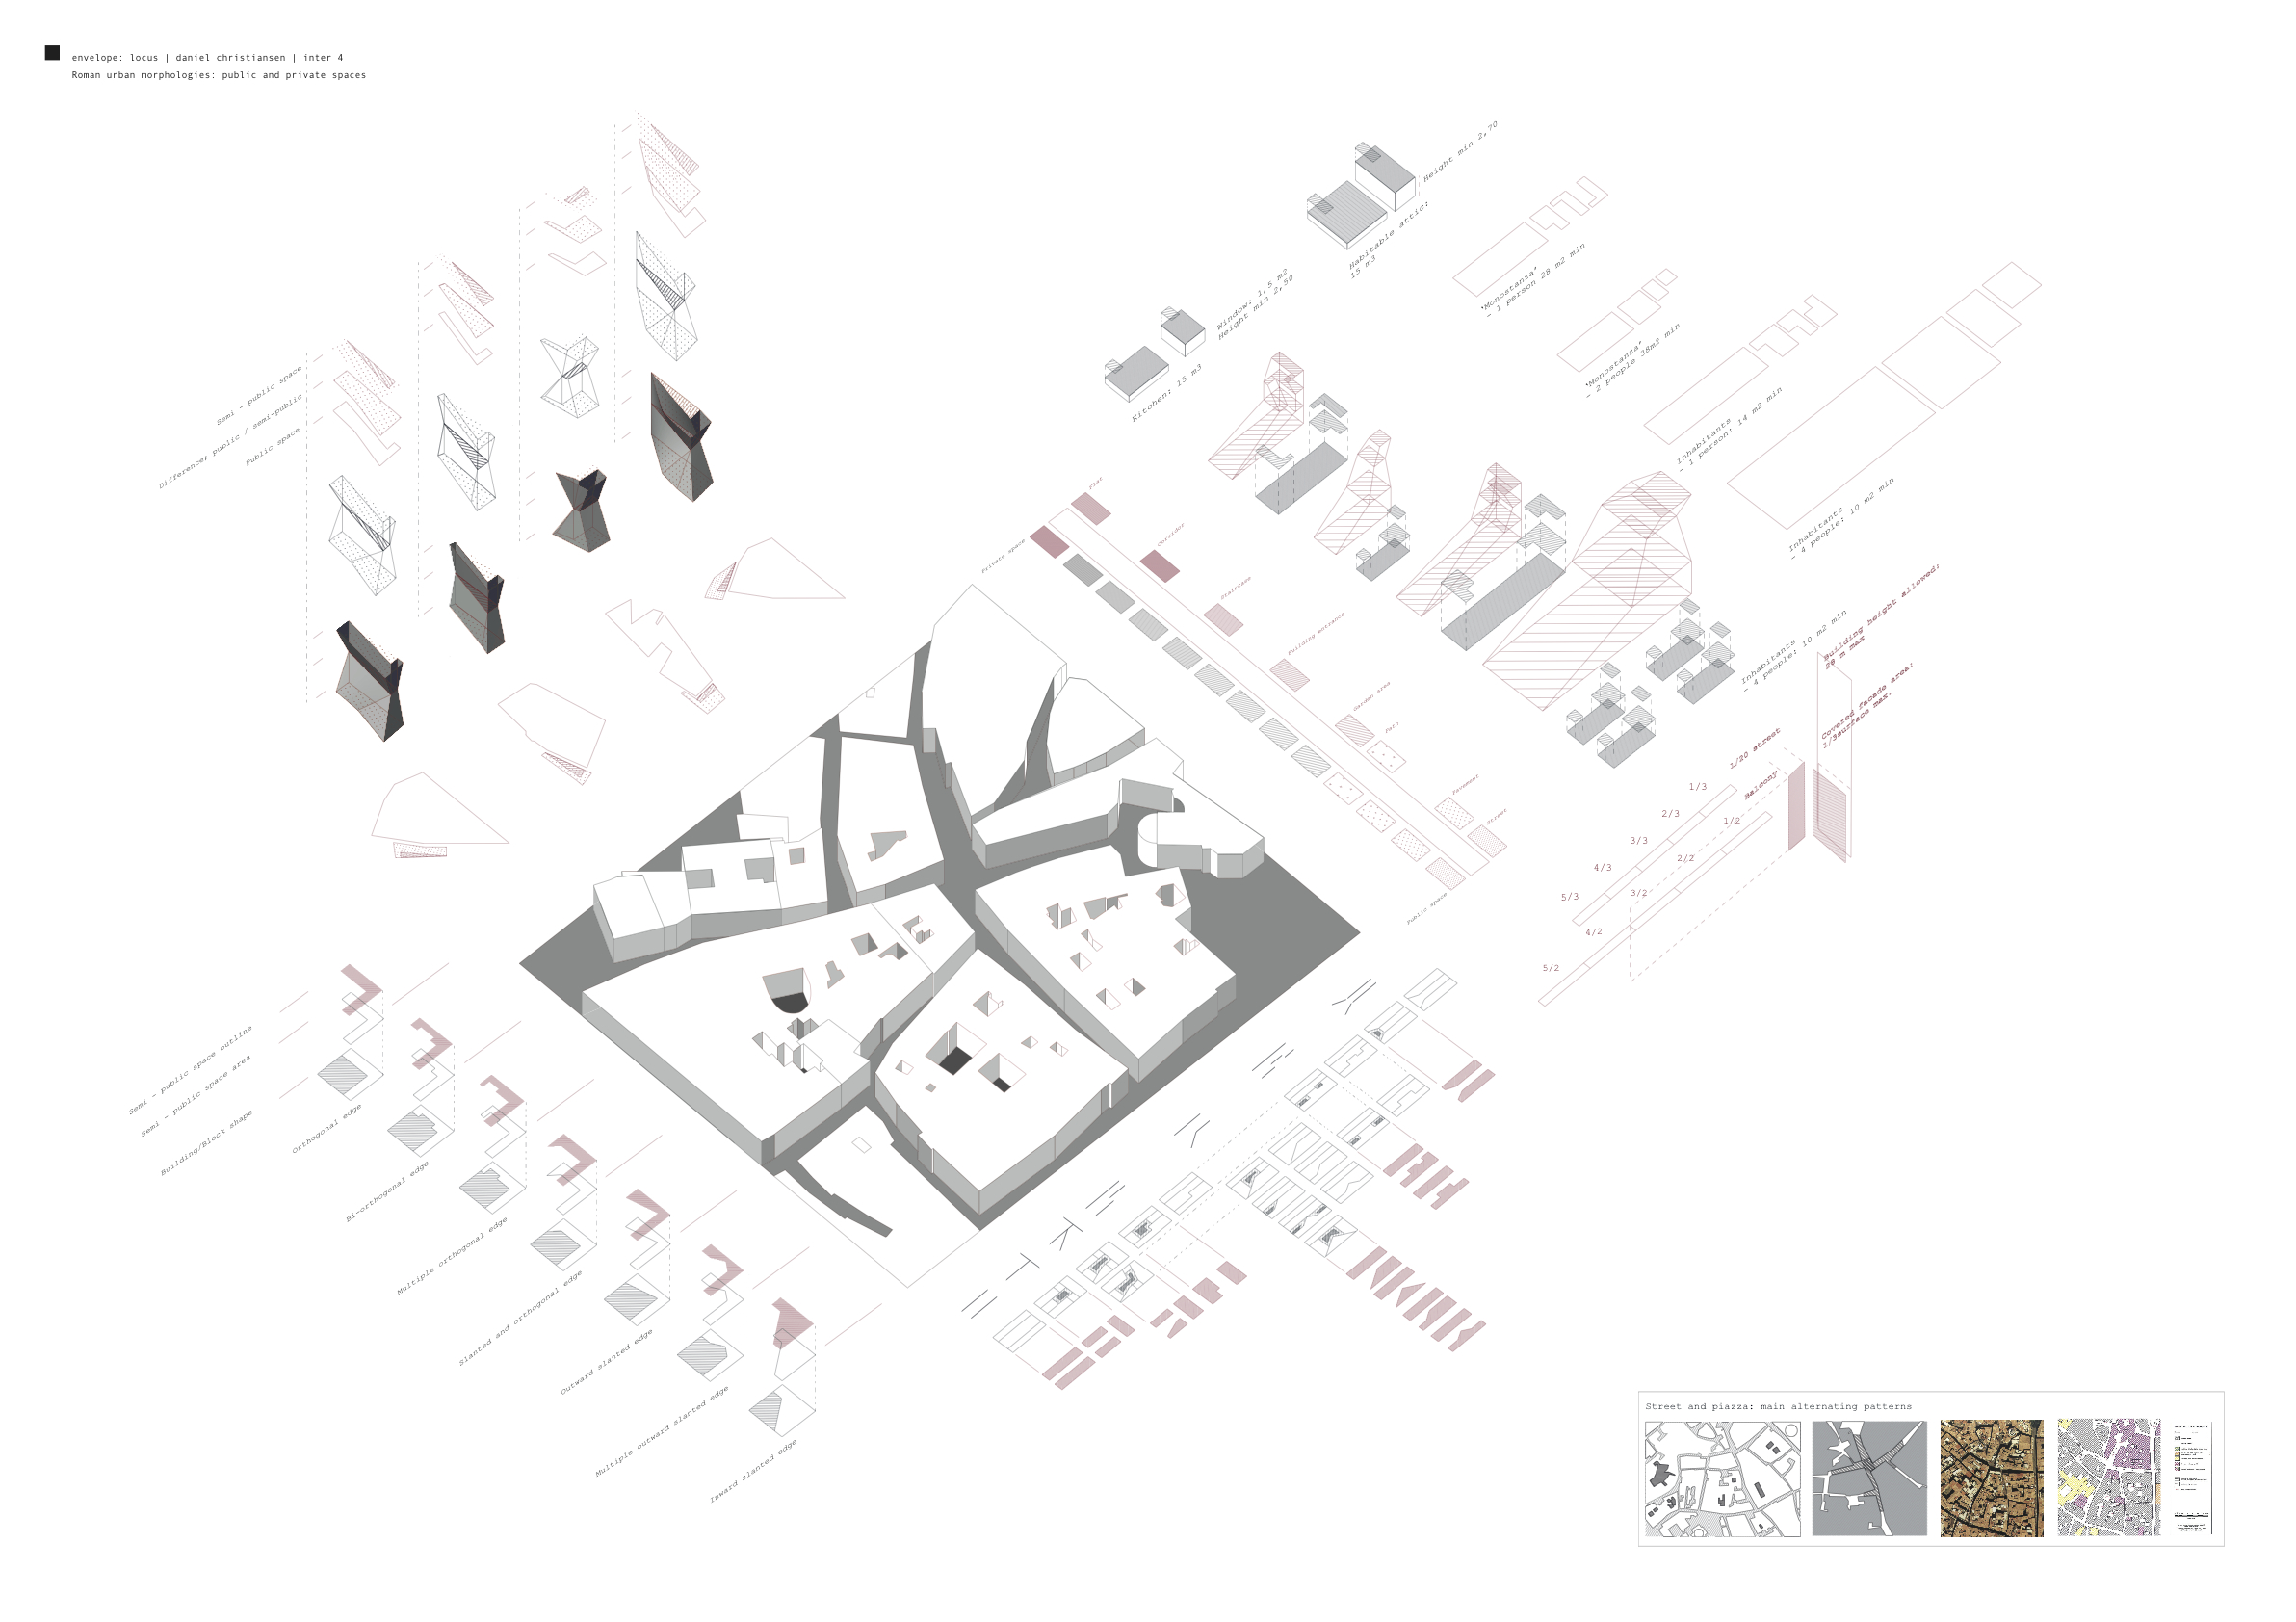 AA School of Architecture Projects Review 2011 - Inter 4 - daniel ...